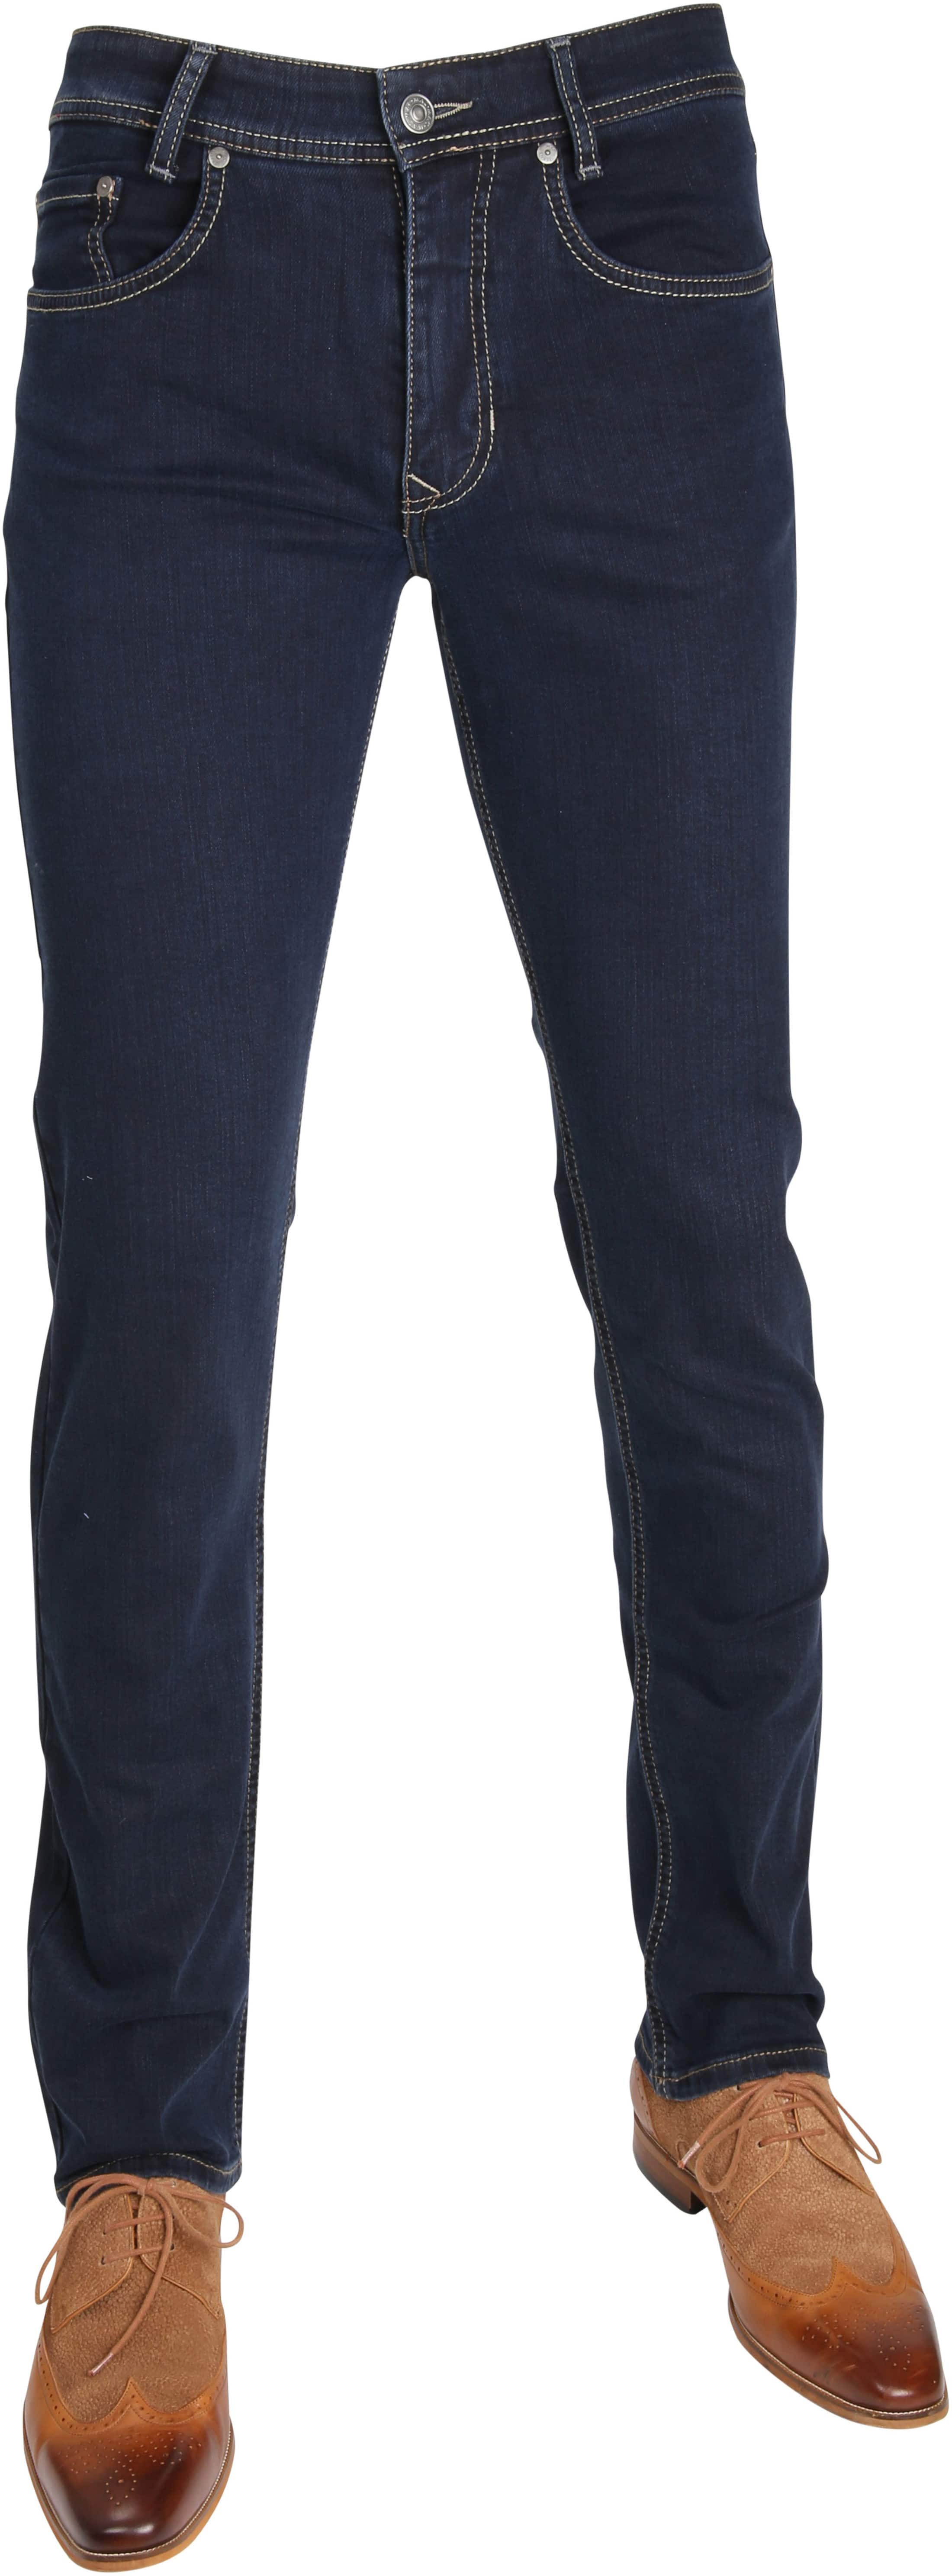 Mac Broek Arne Stretch Blue Black H799 foto 0